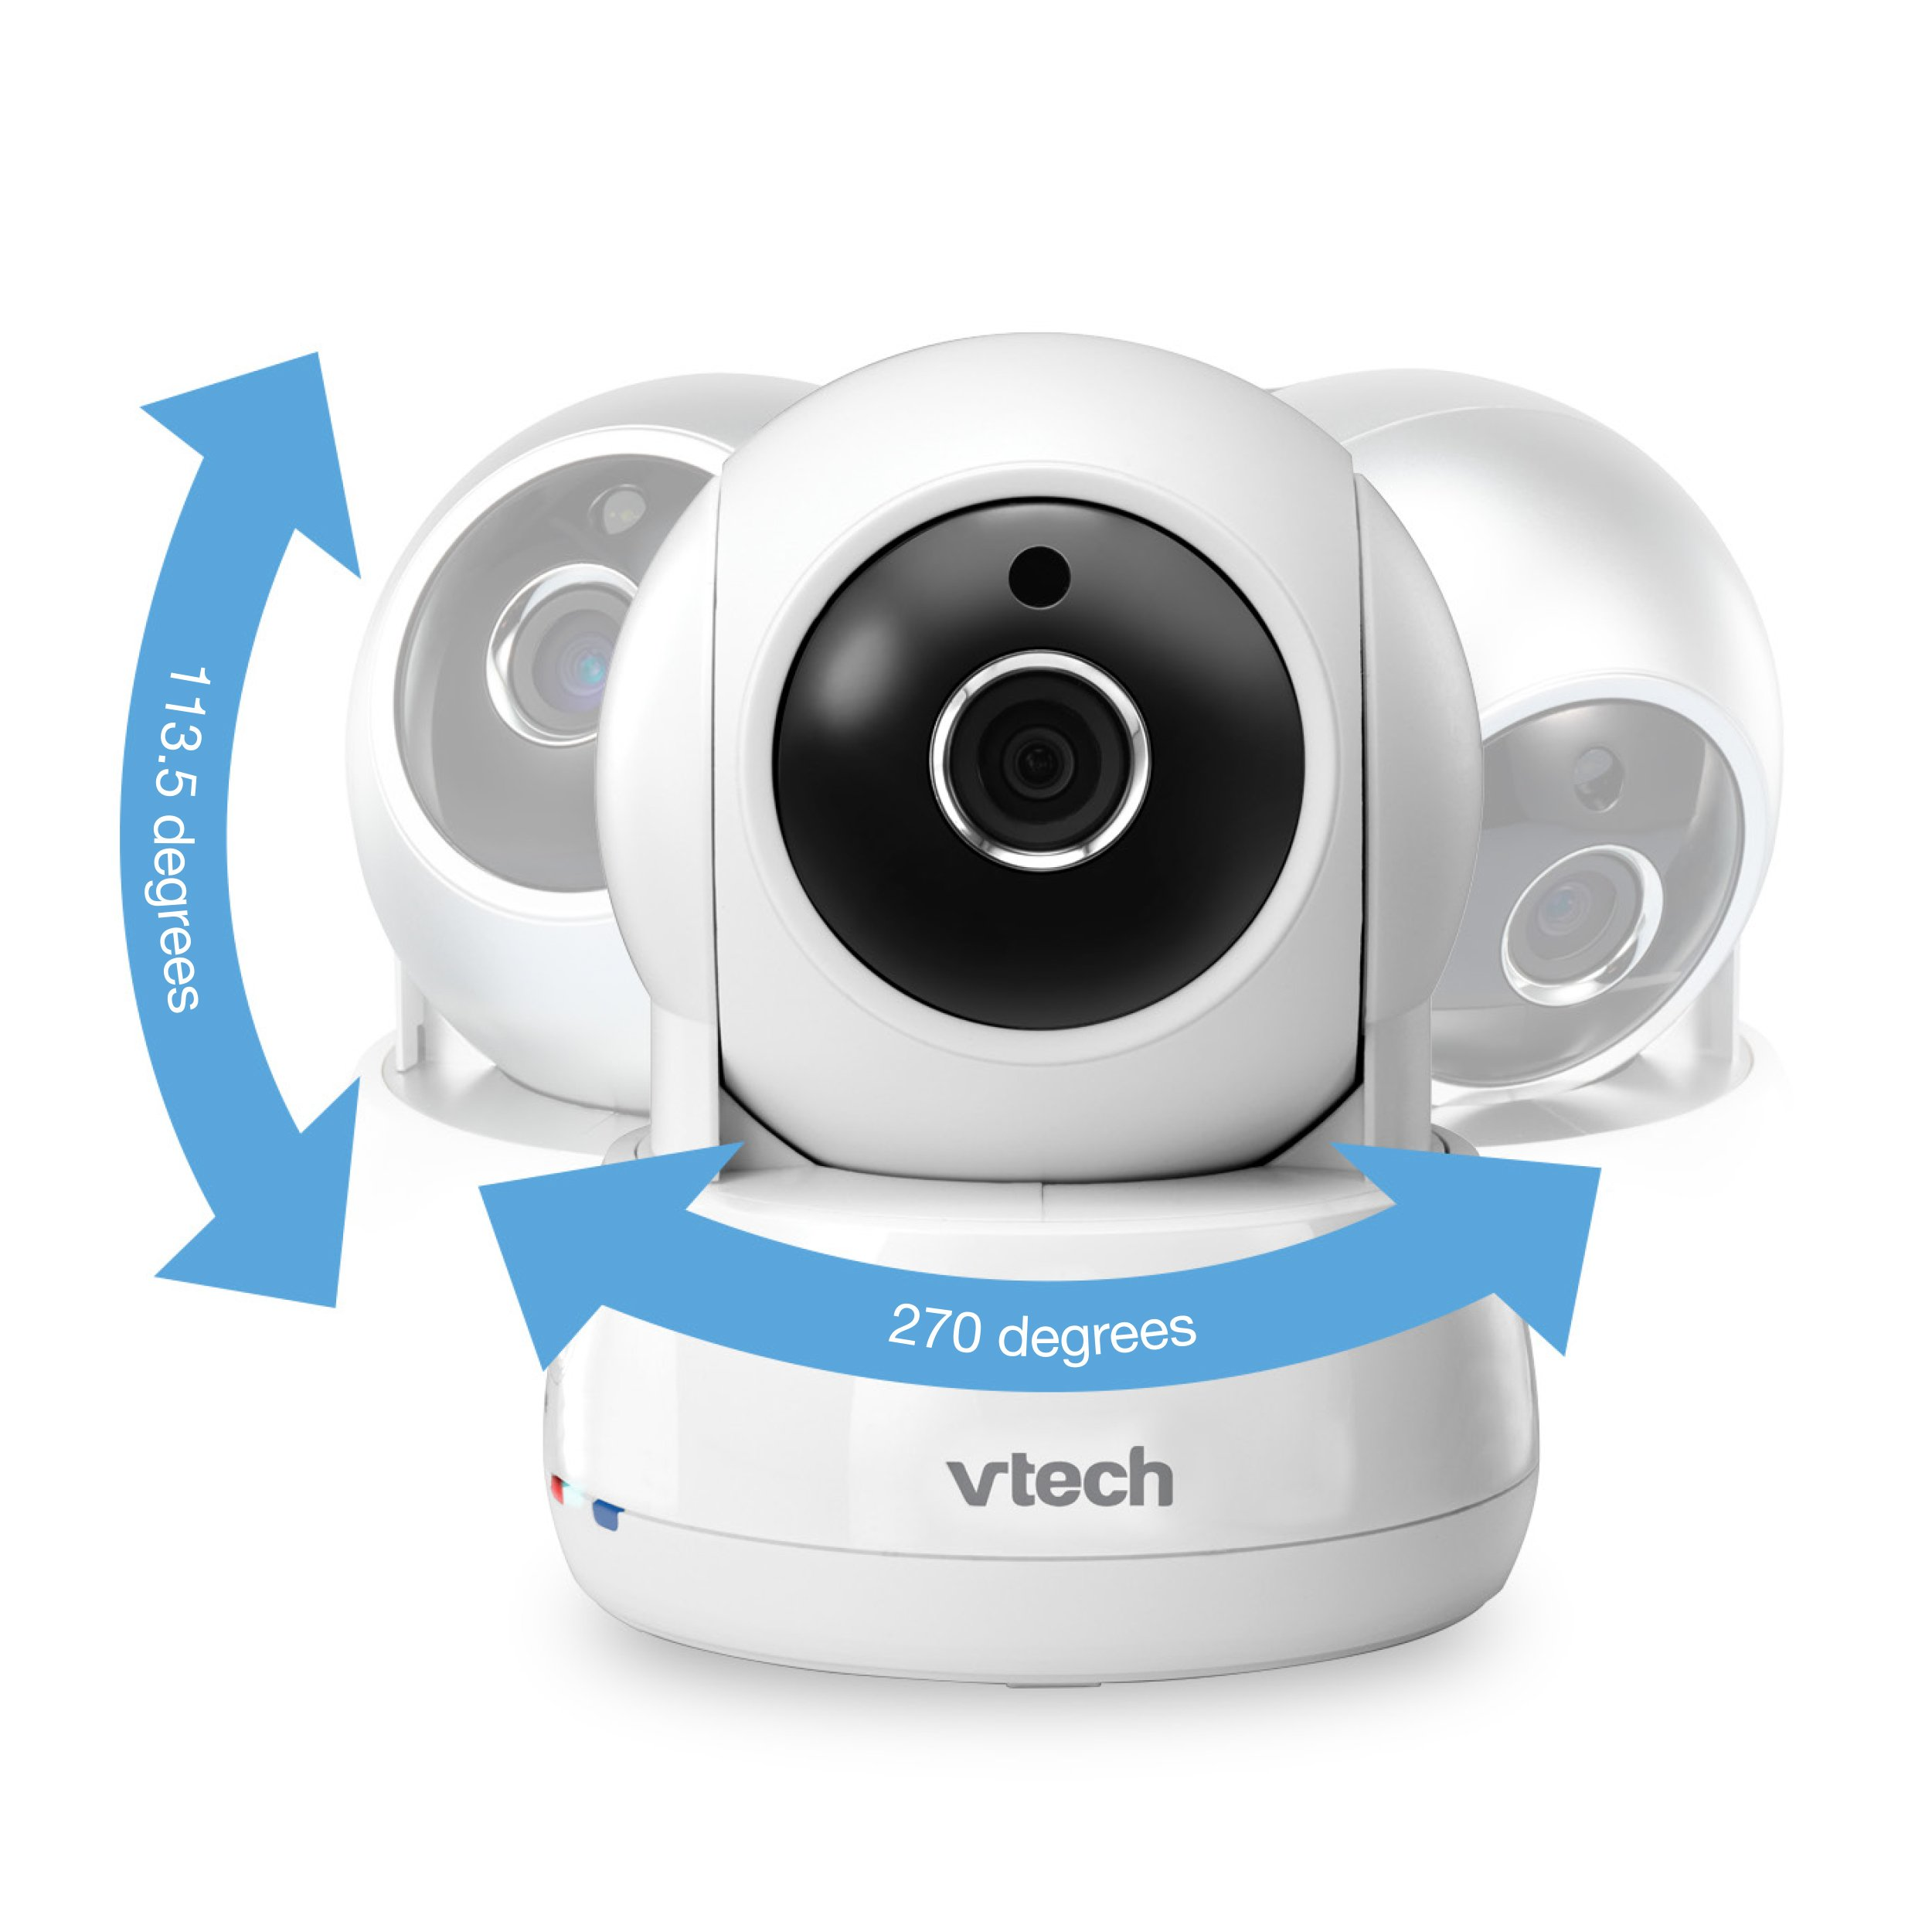 VTech VM991 Wireless WiFi Video Baby Monitor with Remote Access App, 5-inch Touch Screen, Remote Access Pan, Tilt & Zoom, Motion Alerts & Support for up to 10 Cameras by VTech (Image #6)